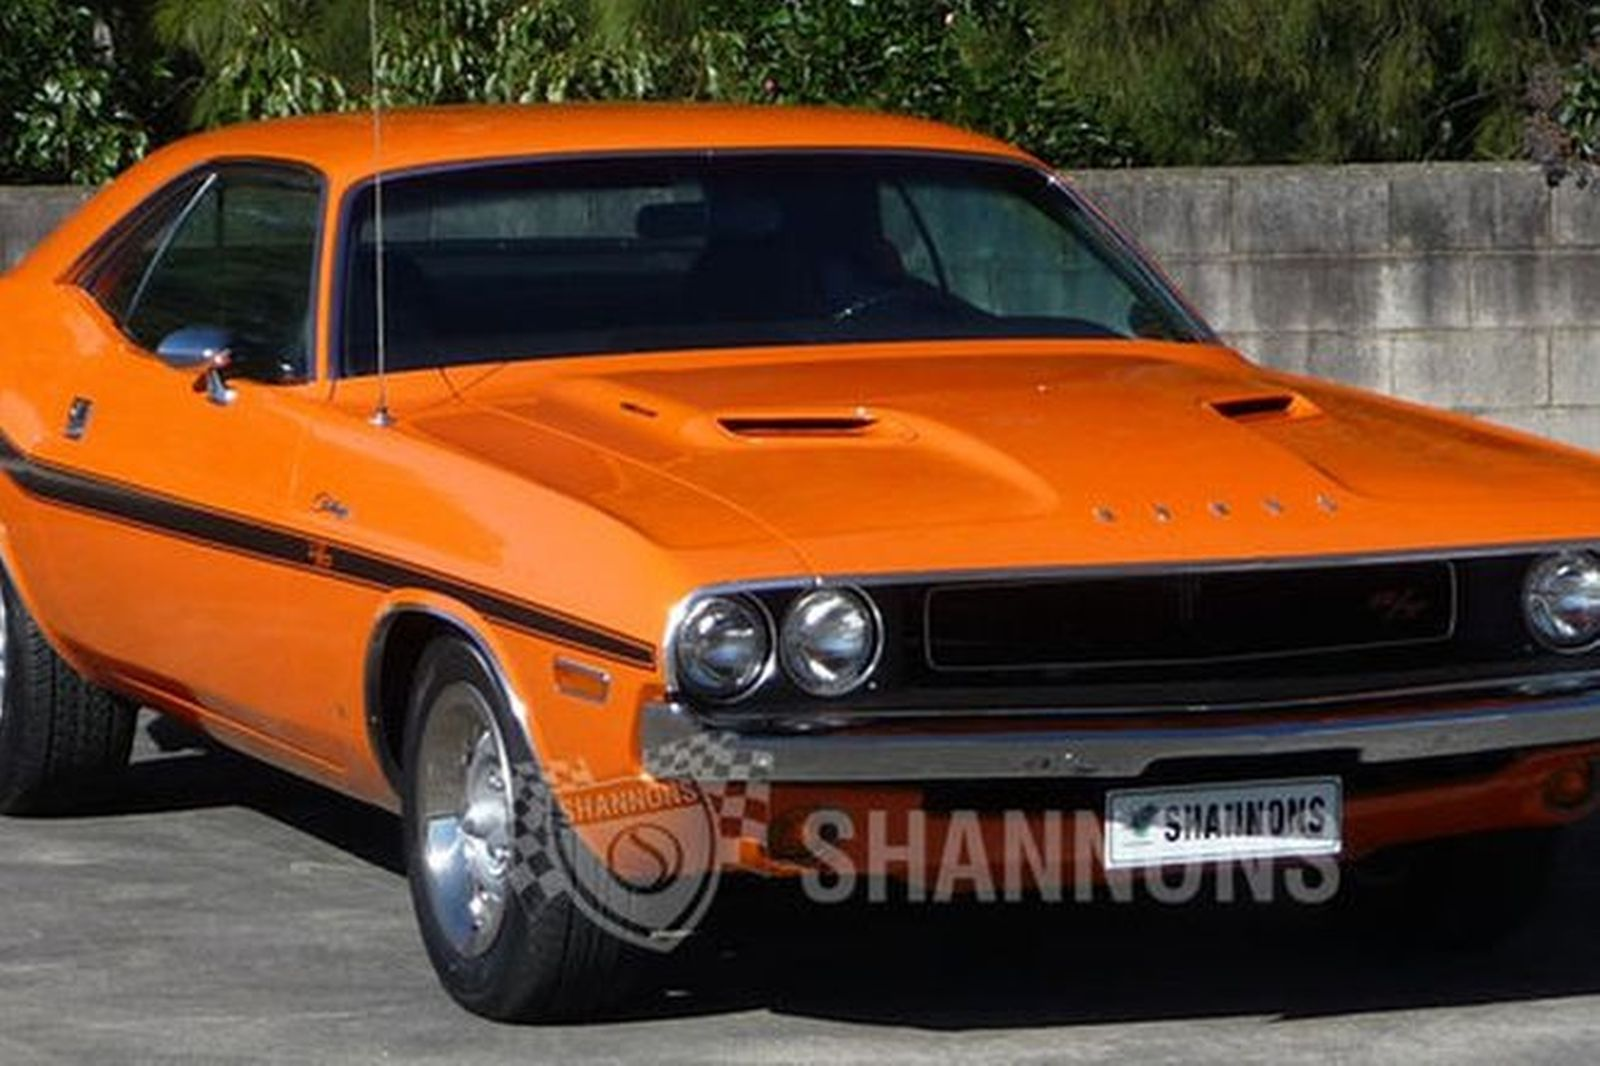 sold dodge challenger r t 440 coupe replica lhd auctions lot 10 shannons. Black Bedroom Furniture Sets. Home Design Ideas